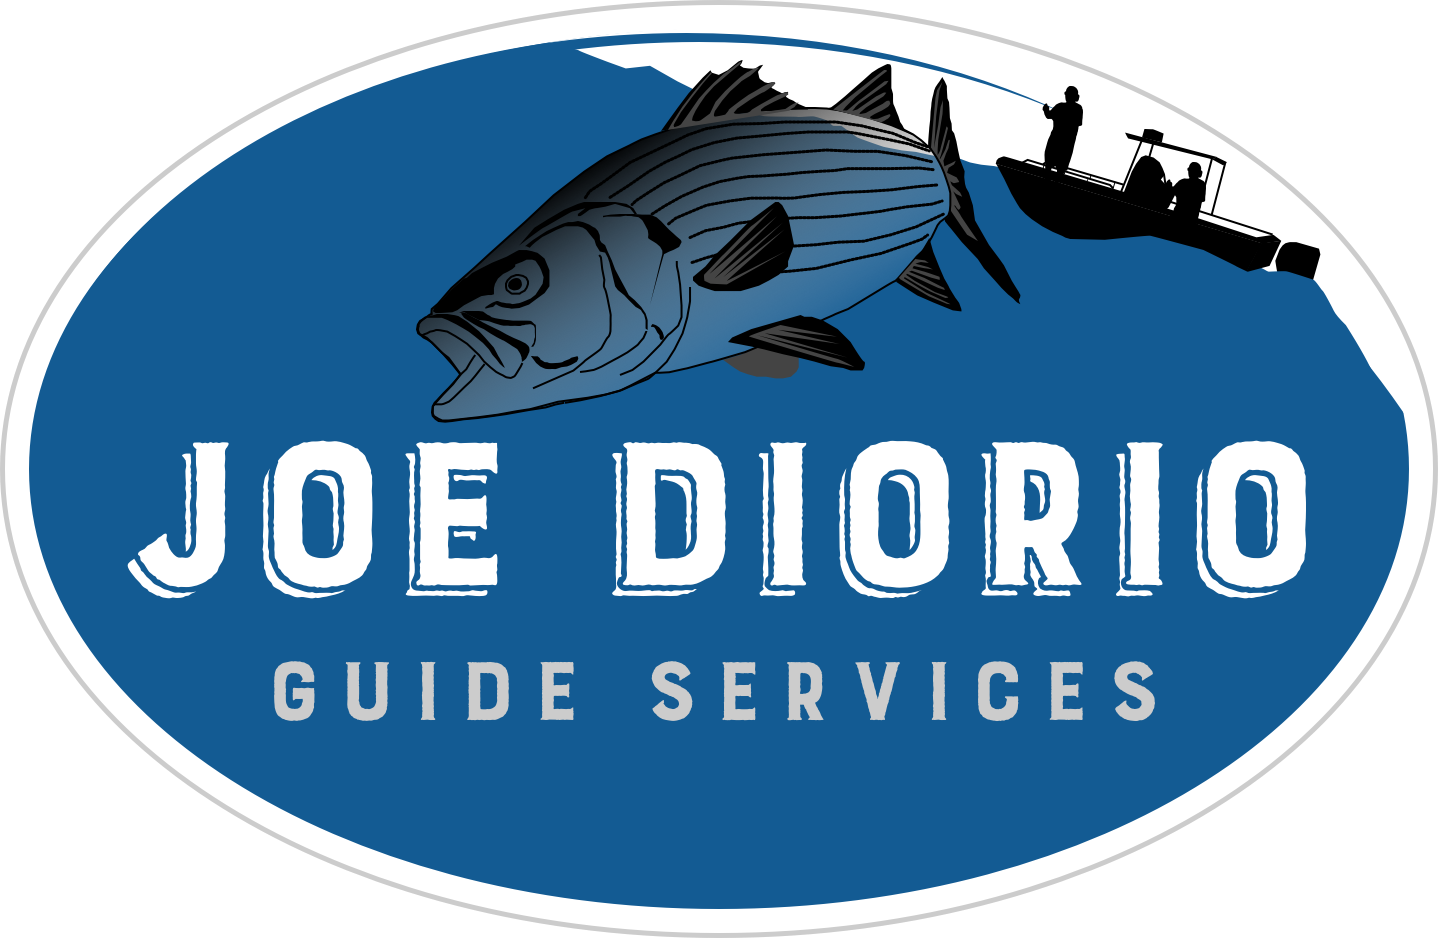 Joe Diorio Guide Service